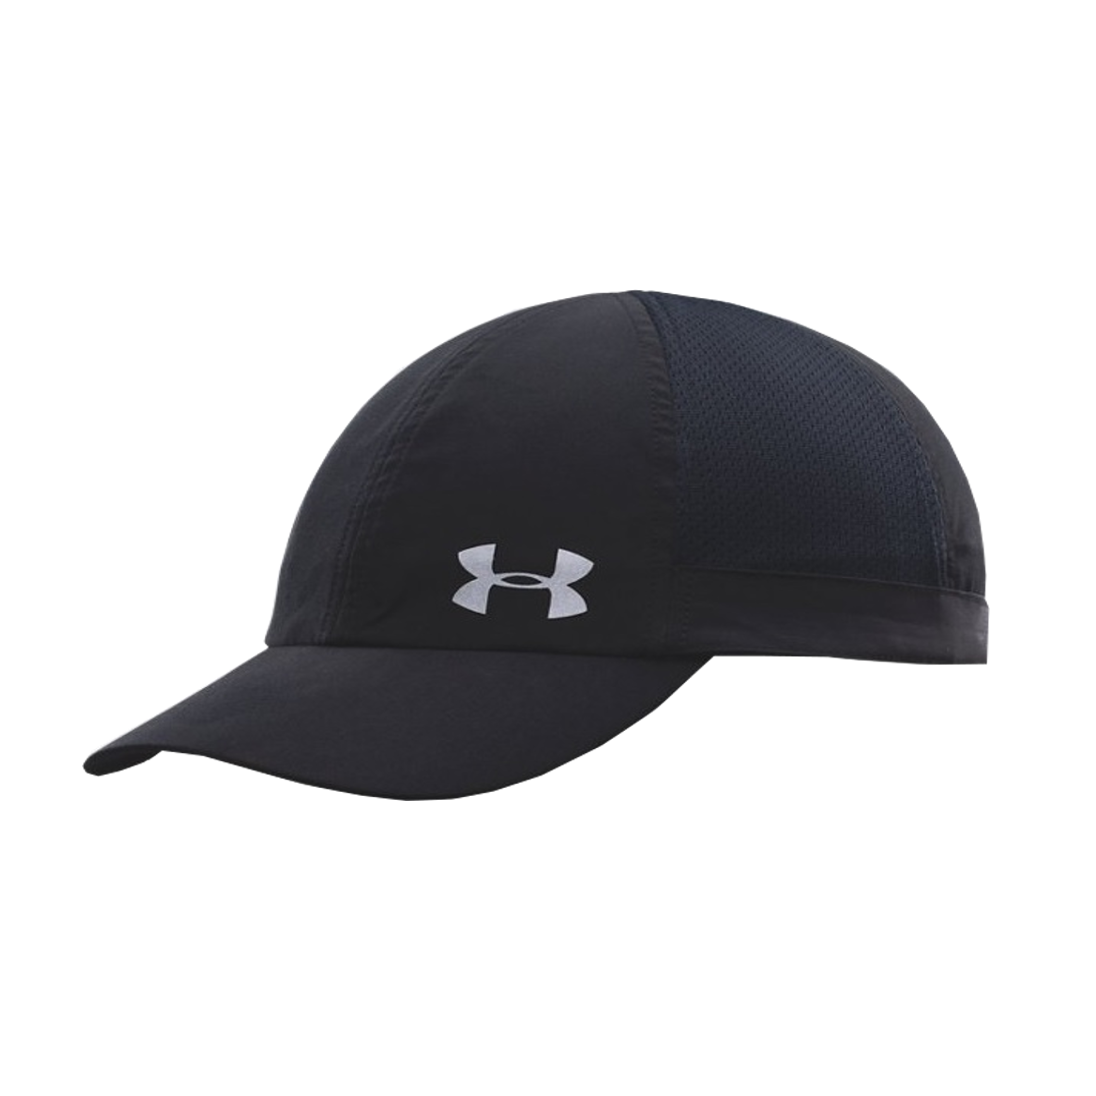 Casquette sport fitness noir femme under armour